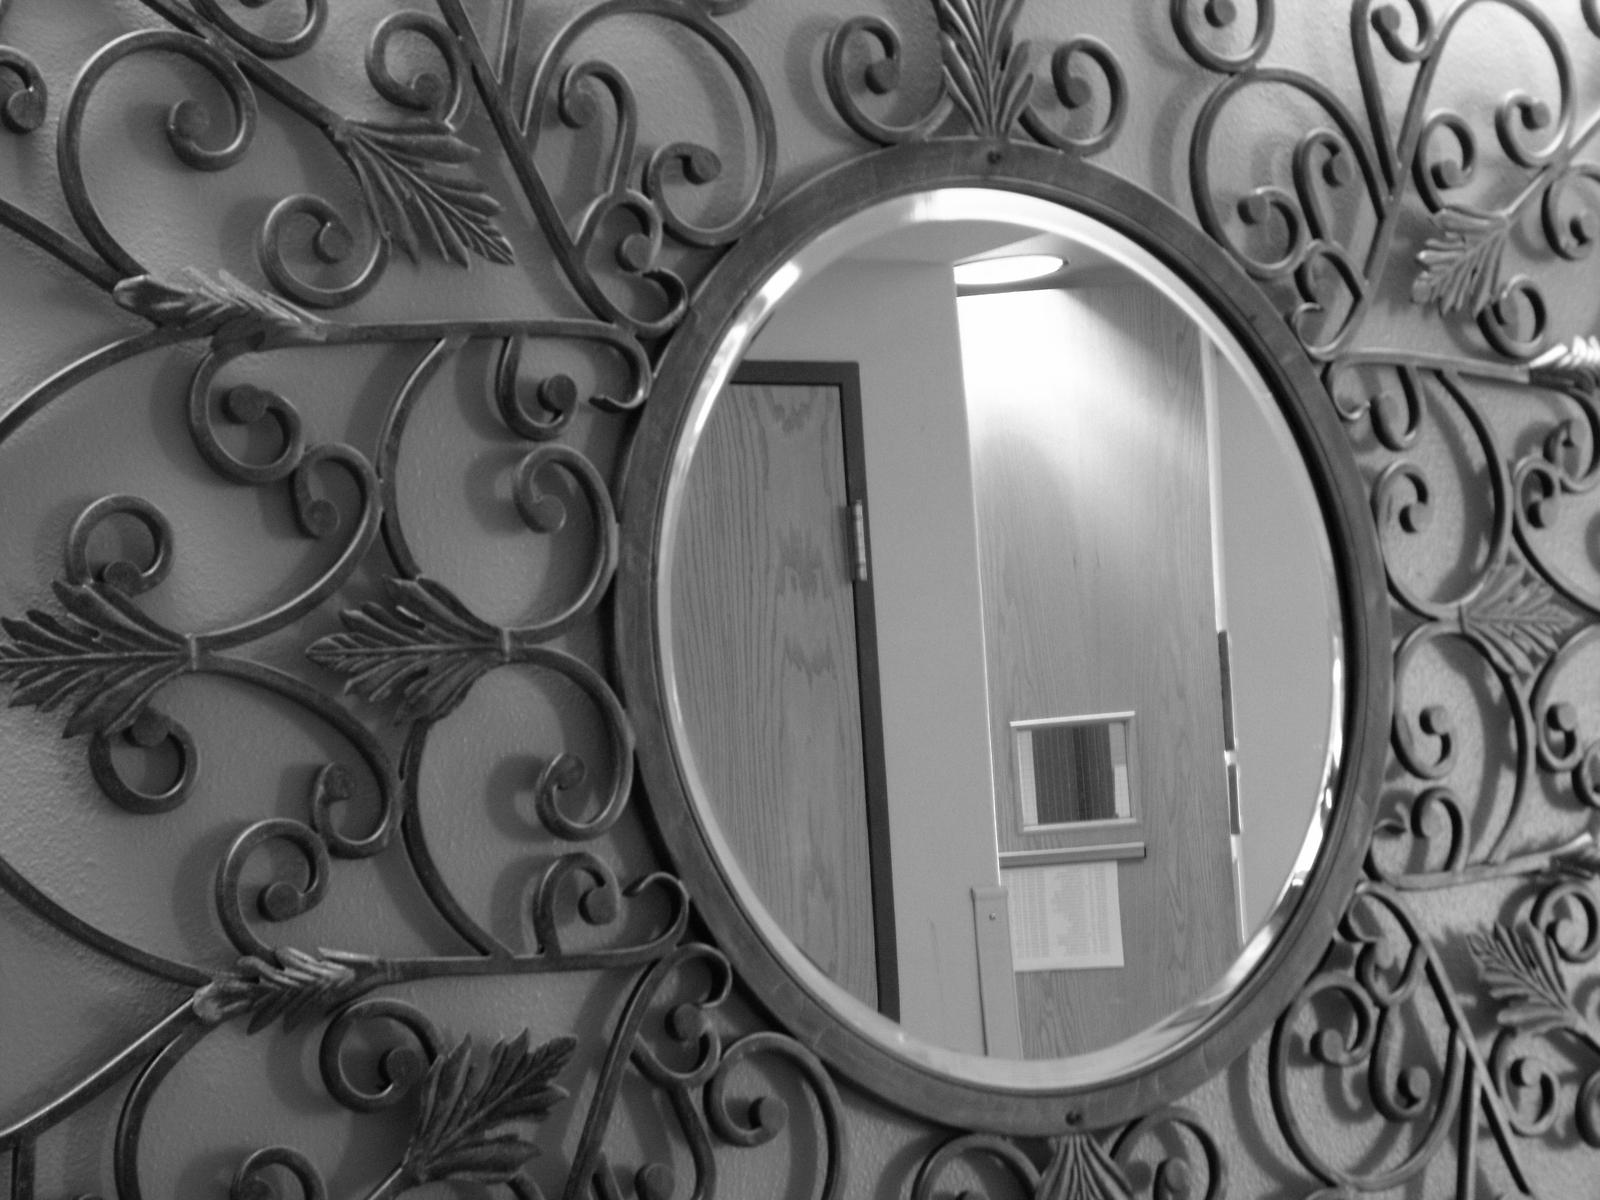 Mirror on the wall choice image home wall decoration ideas mirror mirror on the wall by sora8969 on deviantart mirror mirror on the wall by sora8969 amipublicfo Gallery